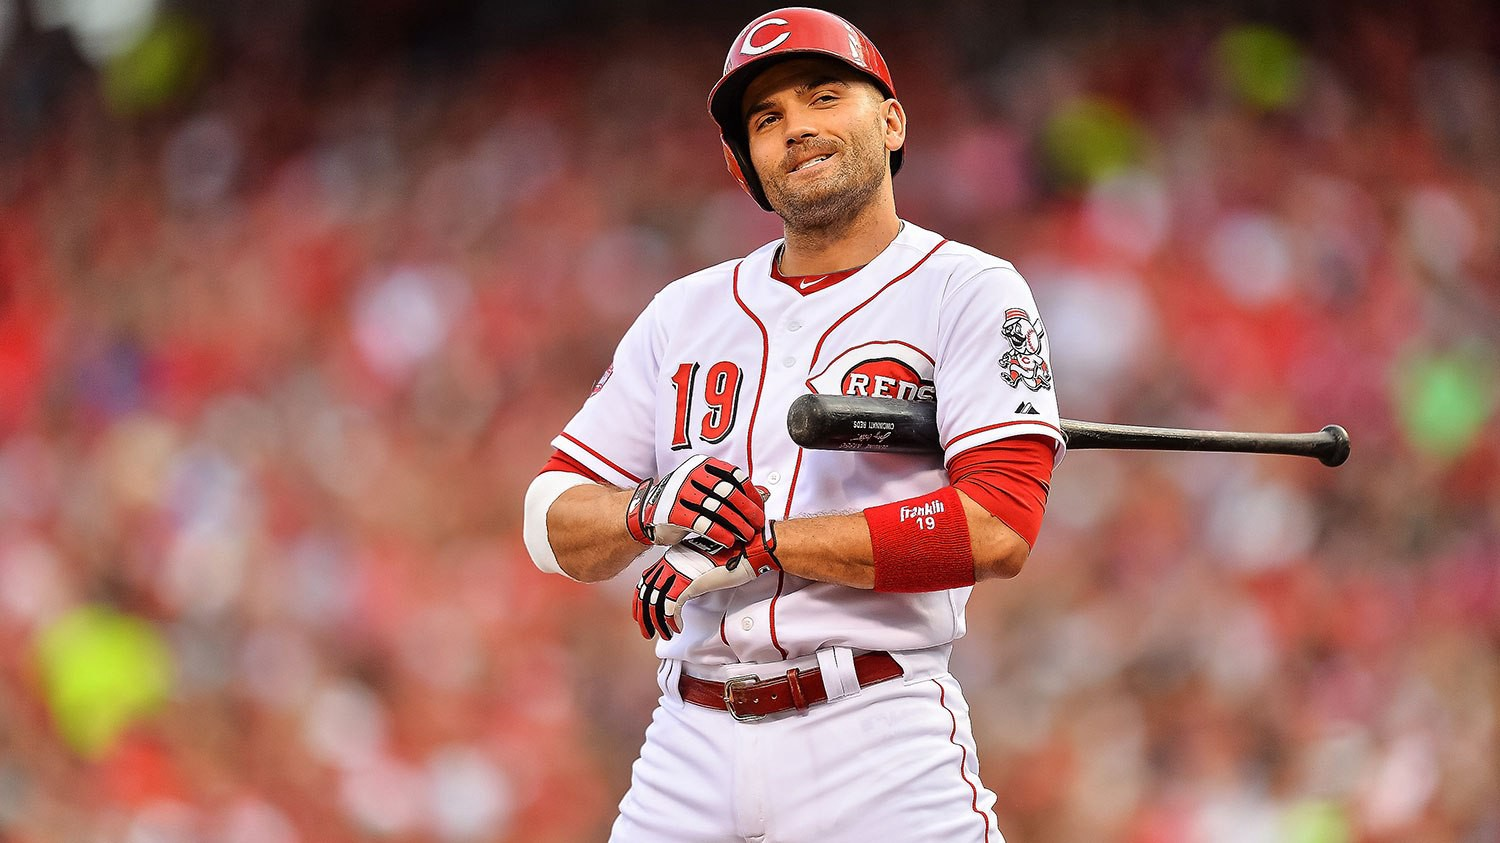 Which Active Players Are Hall Of Fame Bound Next Generation Baseball Ichiro Young Red 1b Joey Votto Is Currently 12th On The List Career War At 568 Photo Credit Jamie Sabau